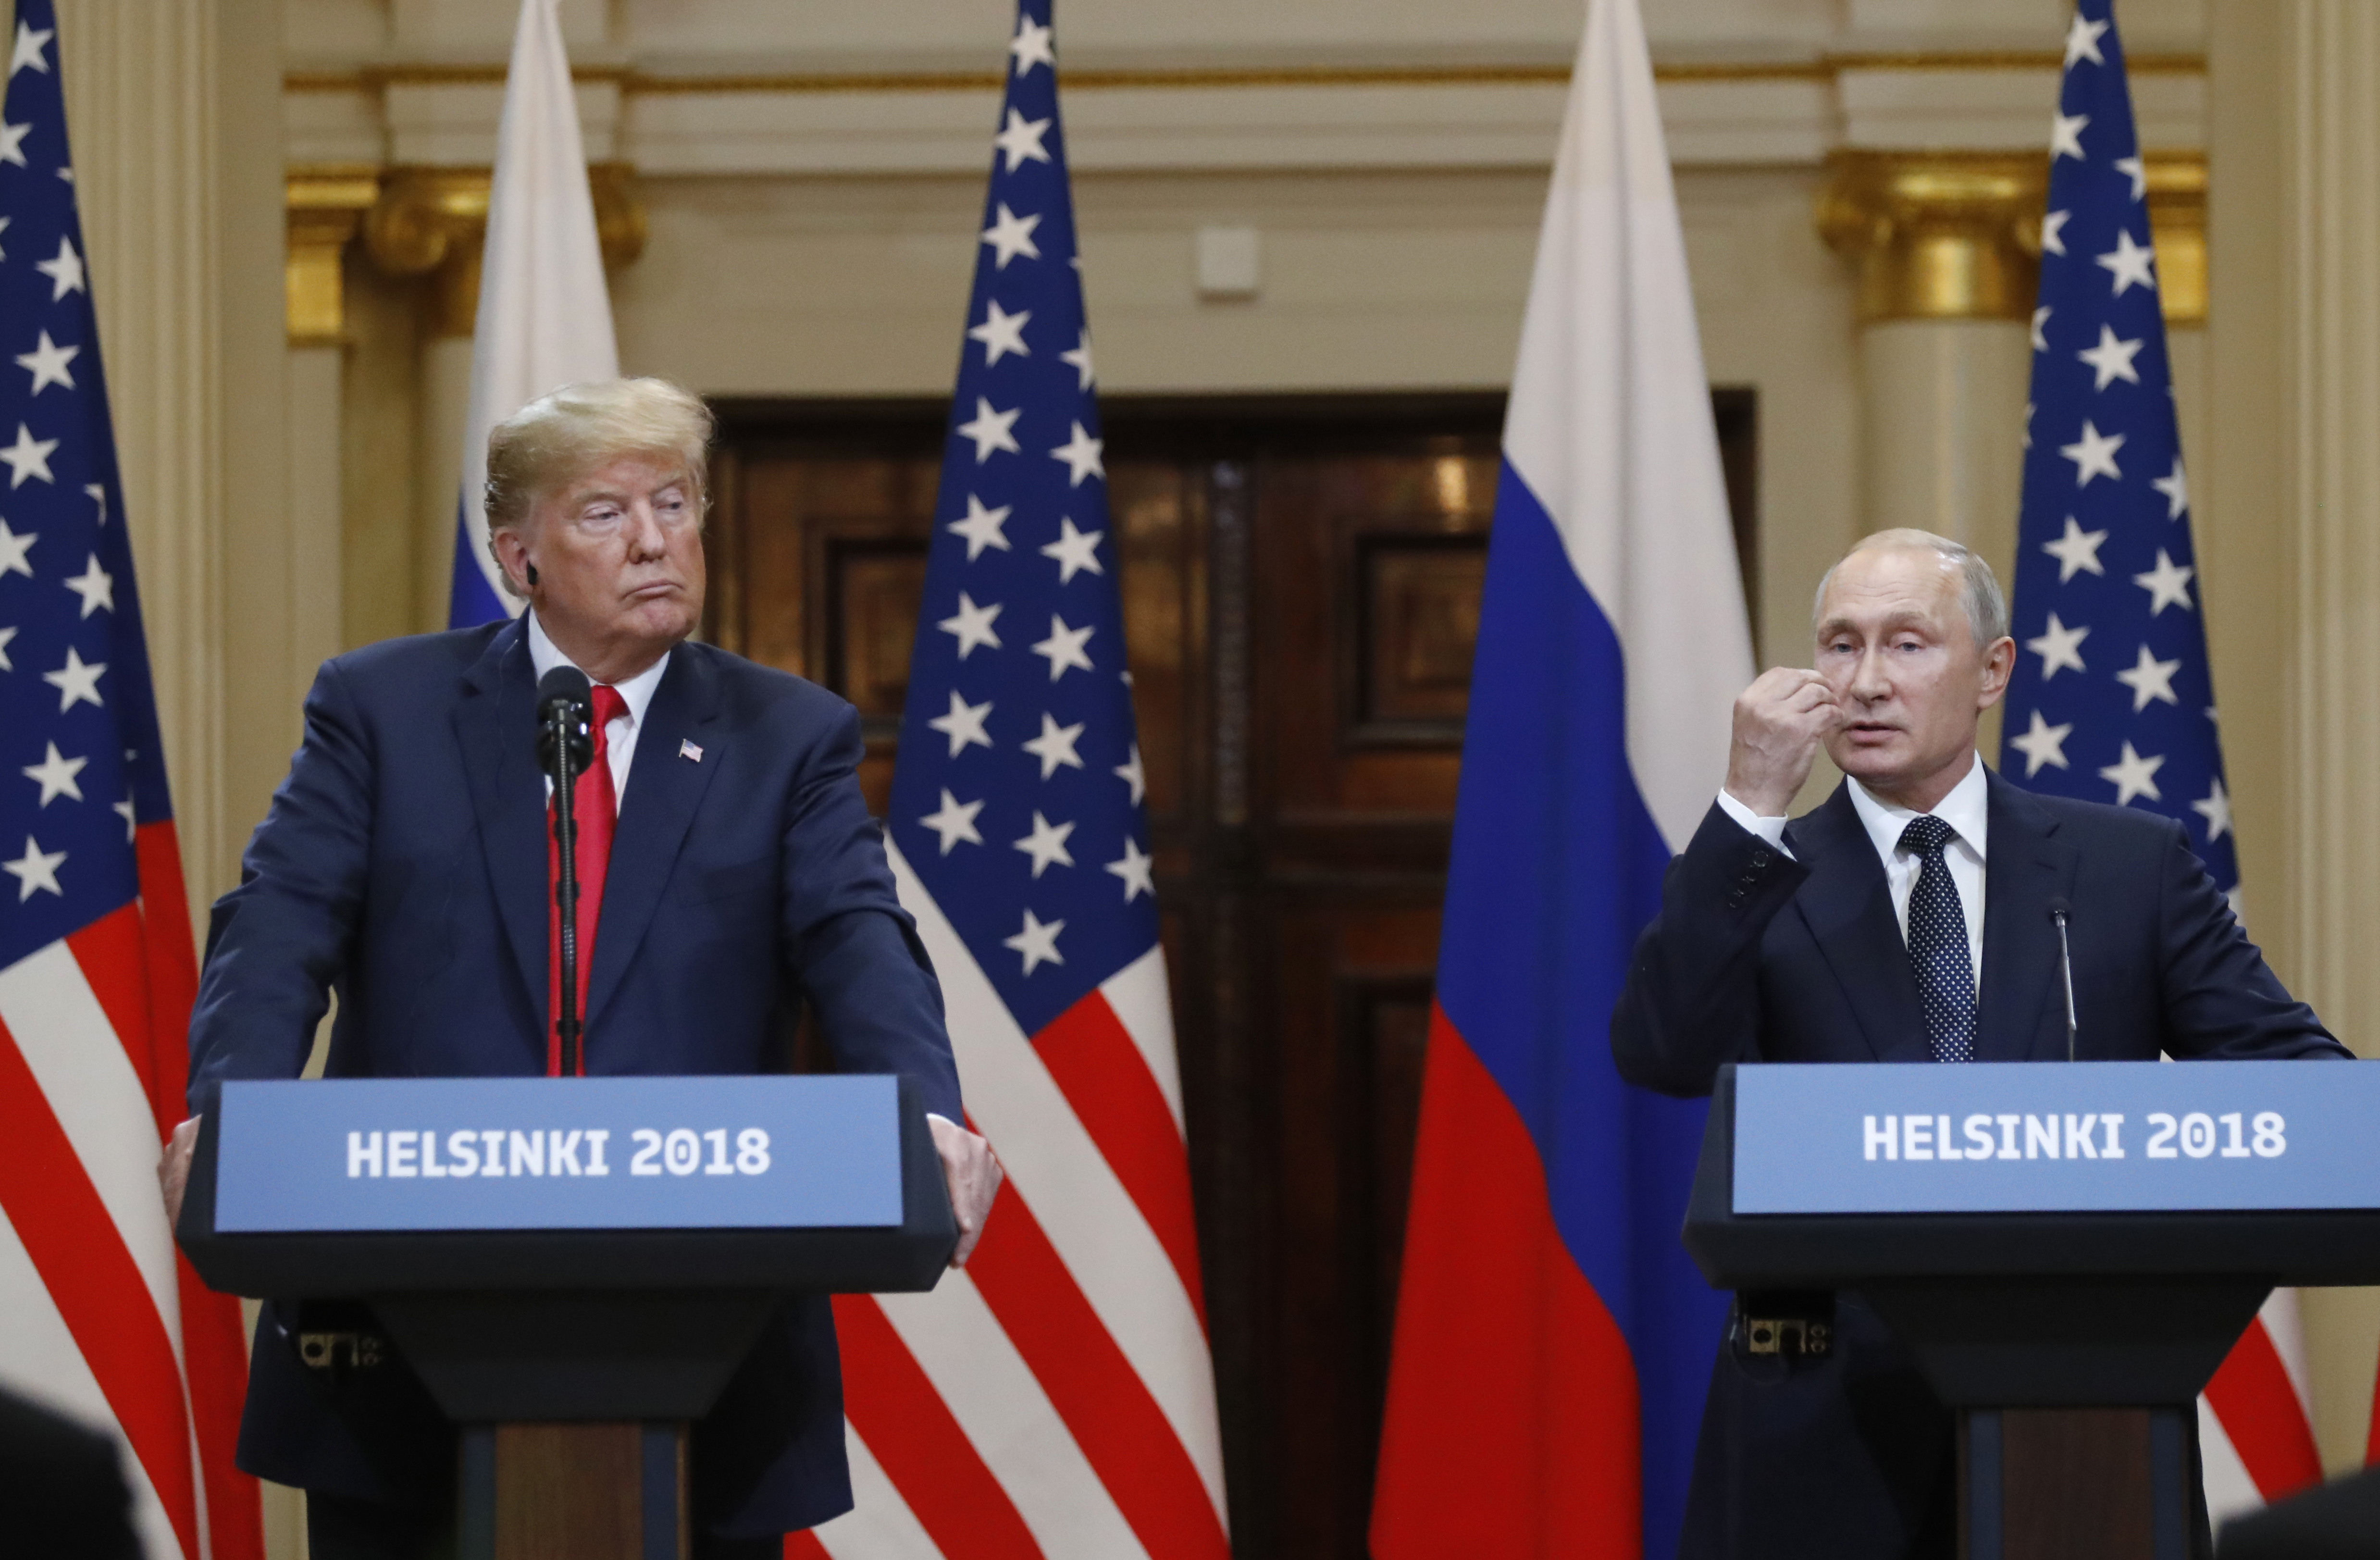 U.S. President Donald Trump, left, listens to Russian President Vladimir Putin during a press conference after their meeting at the Presidential Palace in Helsinki, Finland, Monday, July 16, 2018.